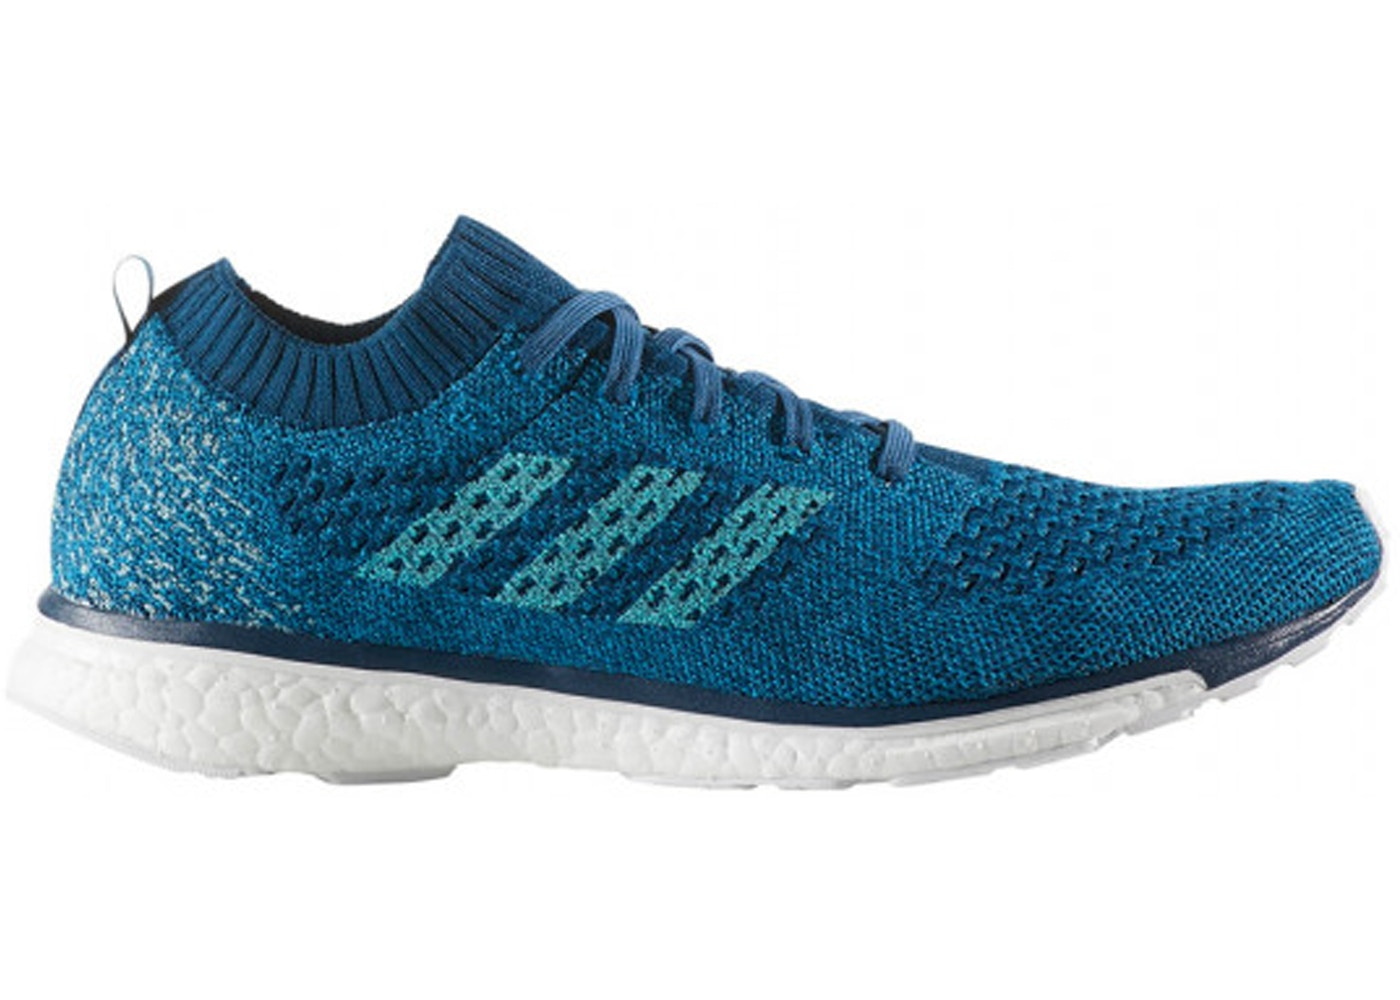 new style 4e58d 90538 Sell. or Ask. Size: 9.5. View All Bids. adidas AdiZero Prime Boost ...